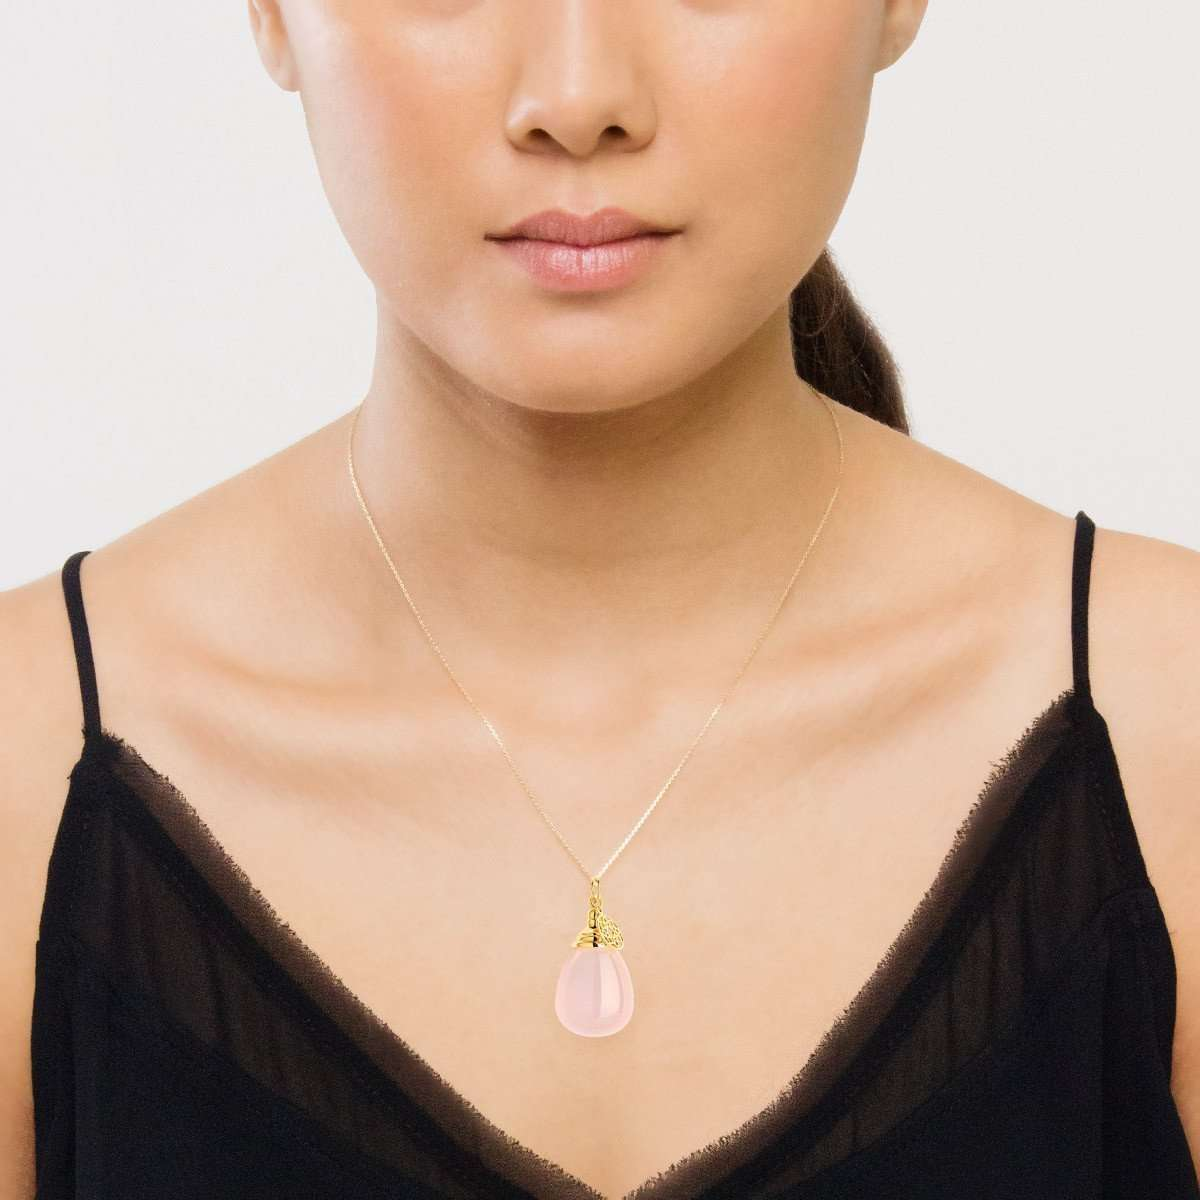 18kt 50 Ct Plus Rose Quartz Drop Necklace-Syna-JewelStreet EU